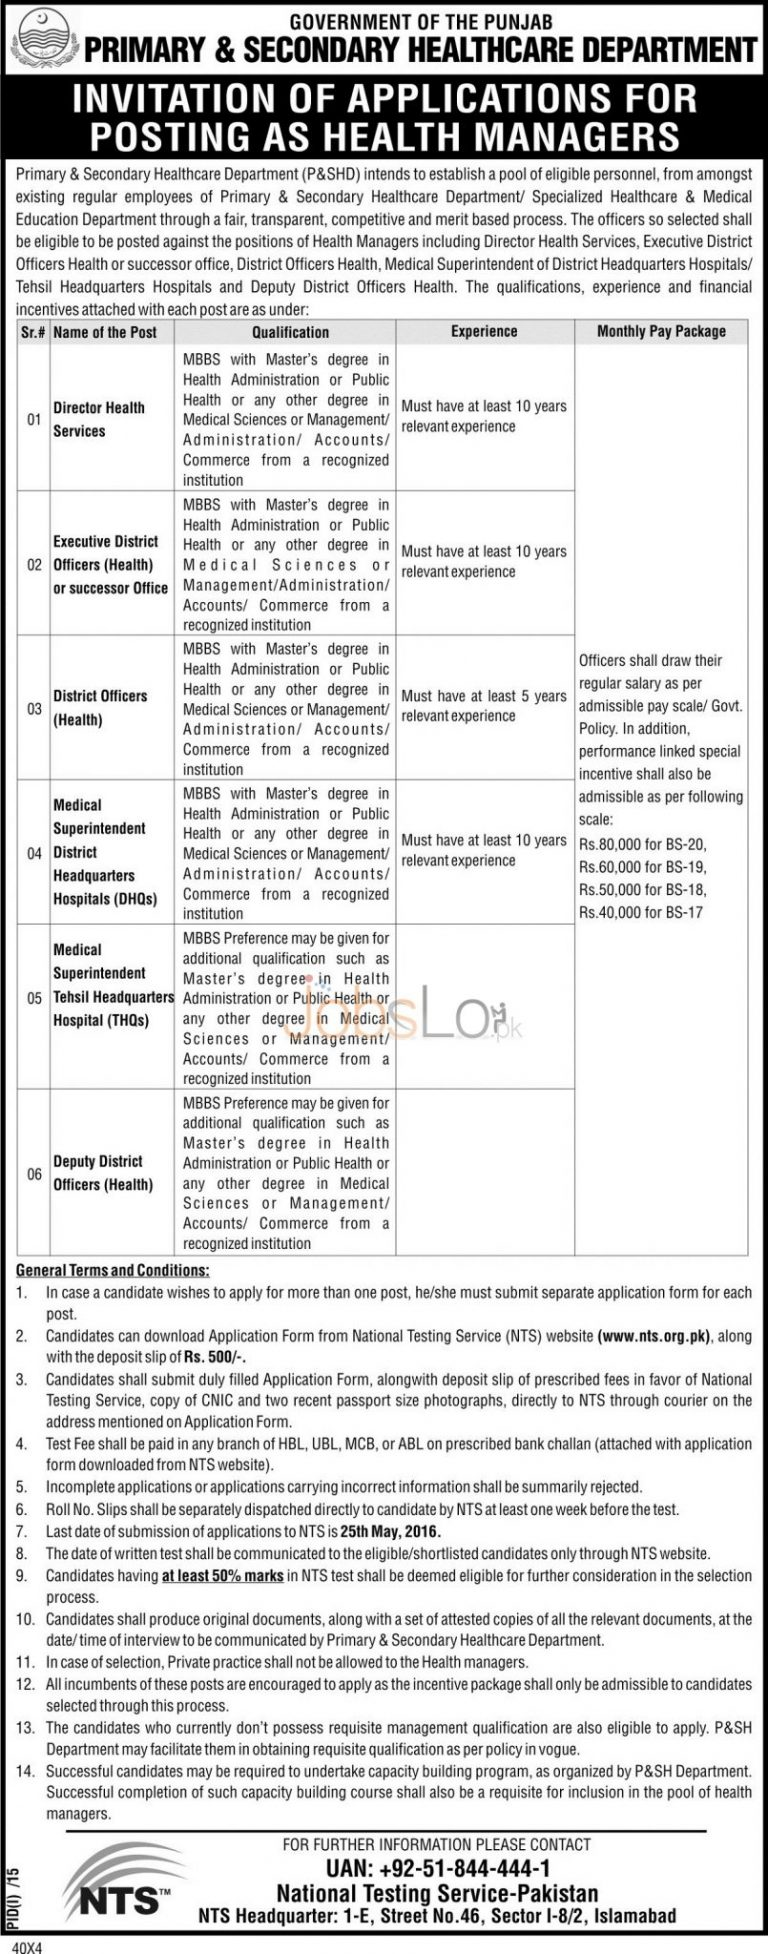 Primary & Secondary Healthcare Department Punjab Jobs May 2016 NTS Application Form www.nts.org.pk